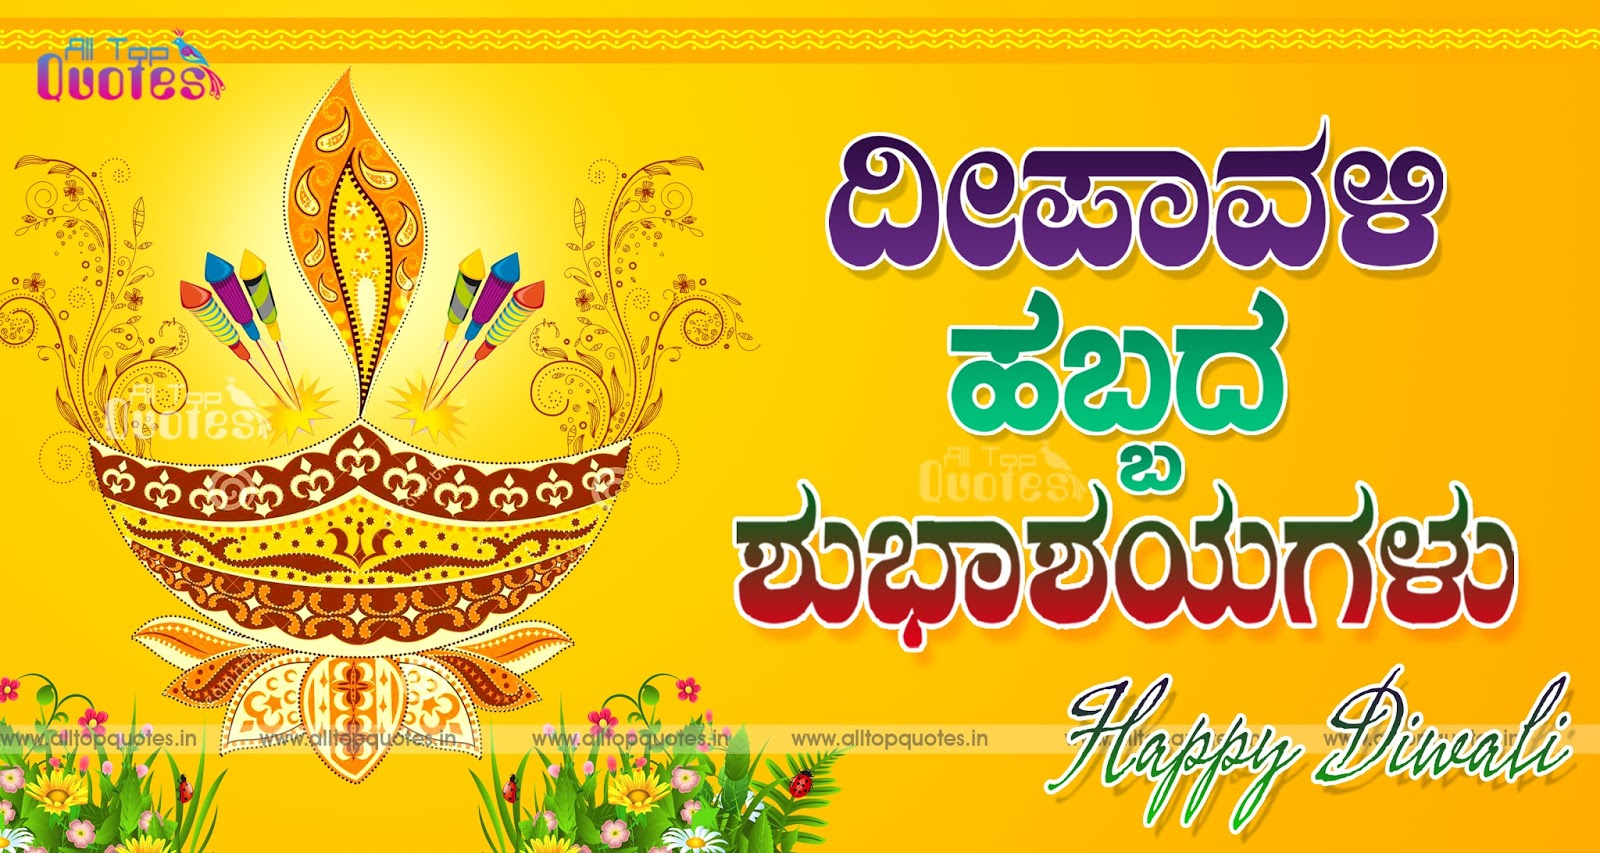 Telugu happy diwalideepavali sms quotes and greetings online telugu happy diwalideepavali sms quotes and greetings online all top quotes telugu quotes english quotes hindi quotes diwali quotes kristyandbryce Choice Image